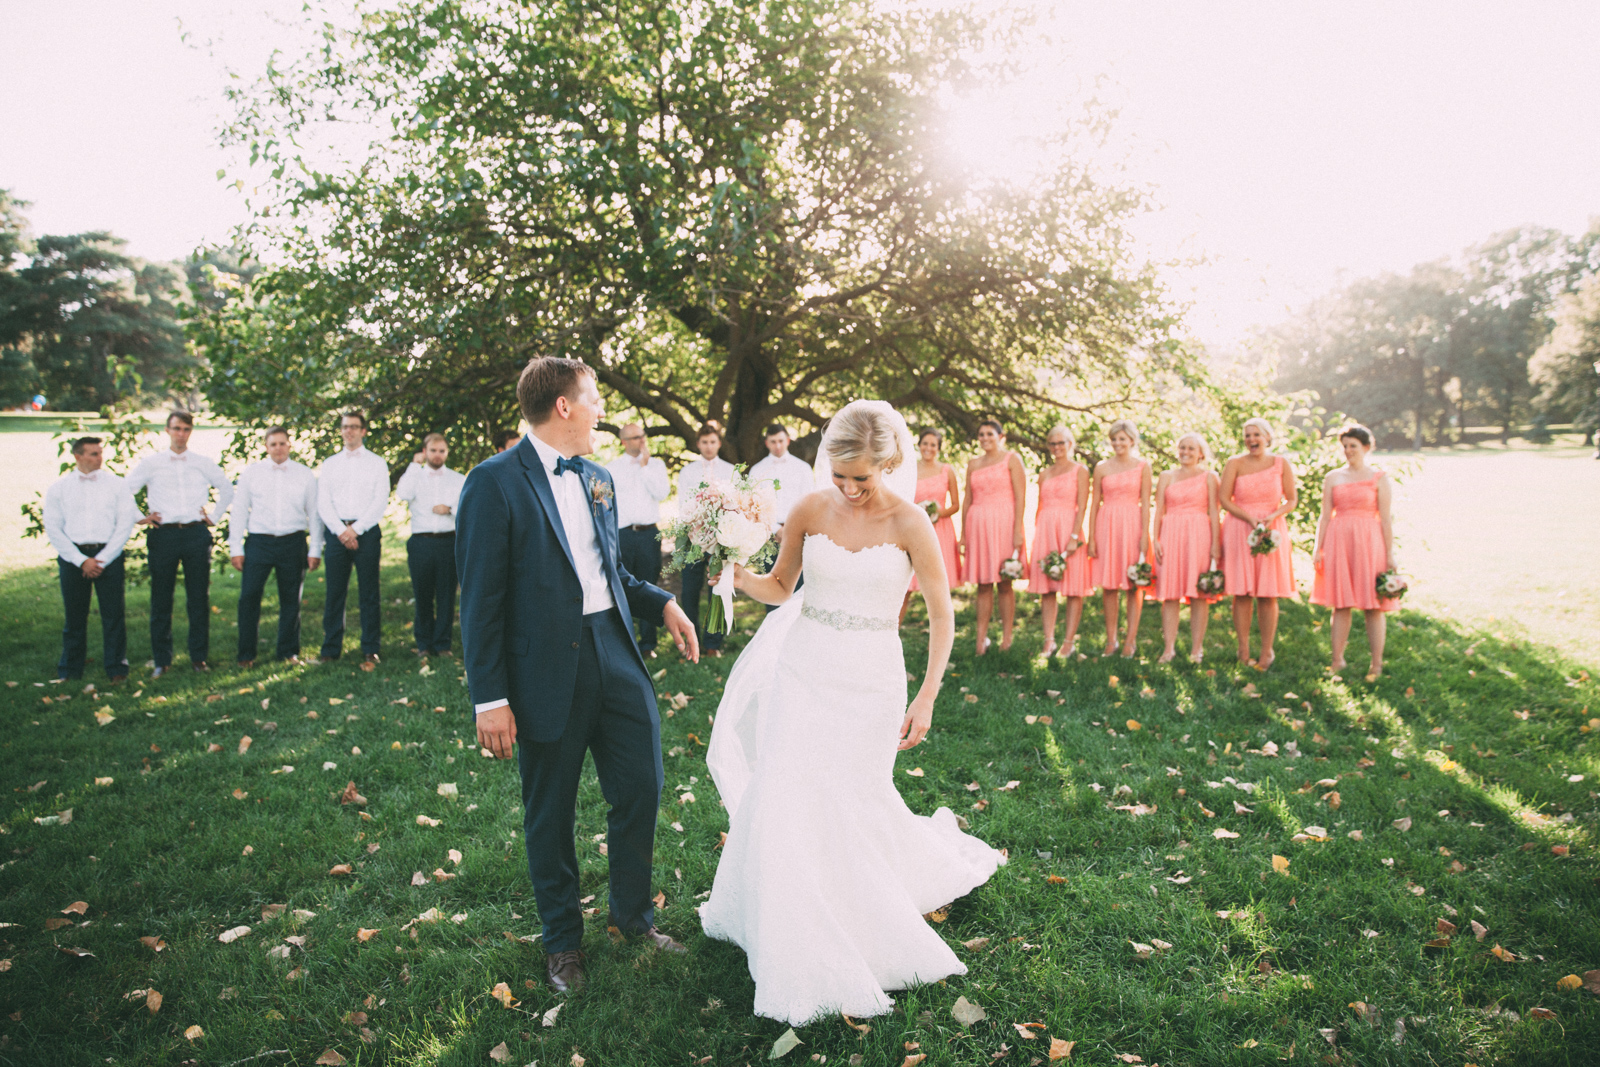 Bride and groom laughing with wedding party in the country